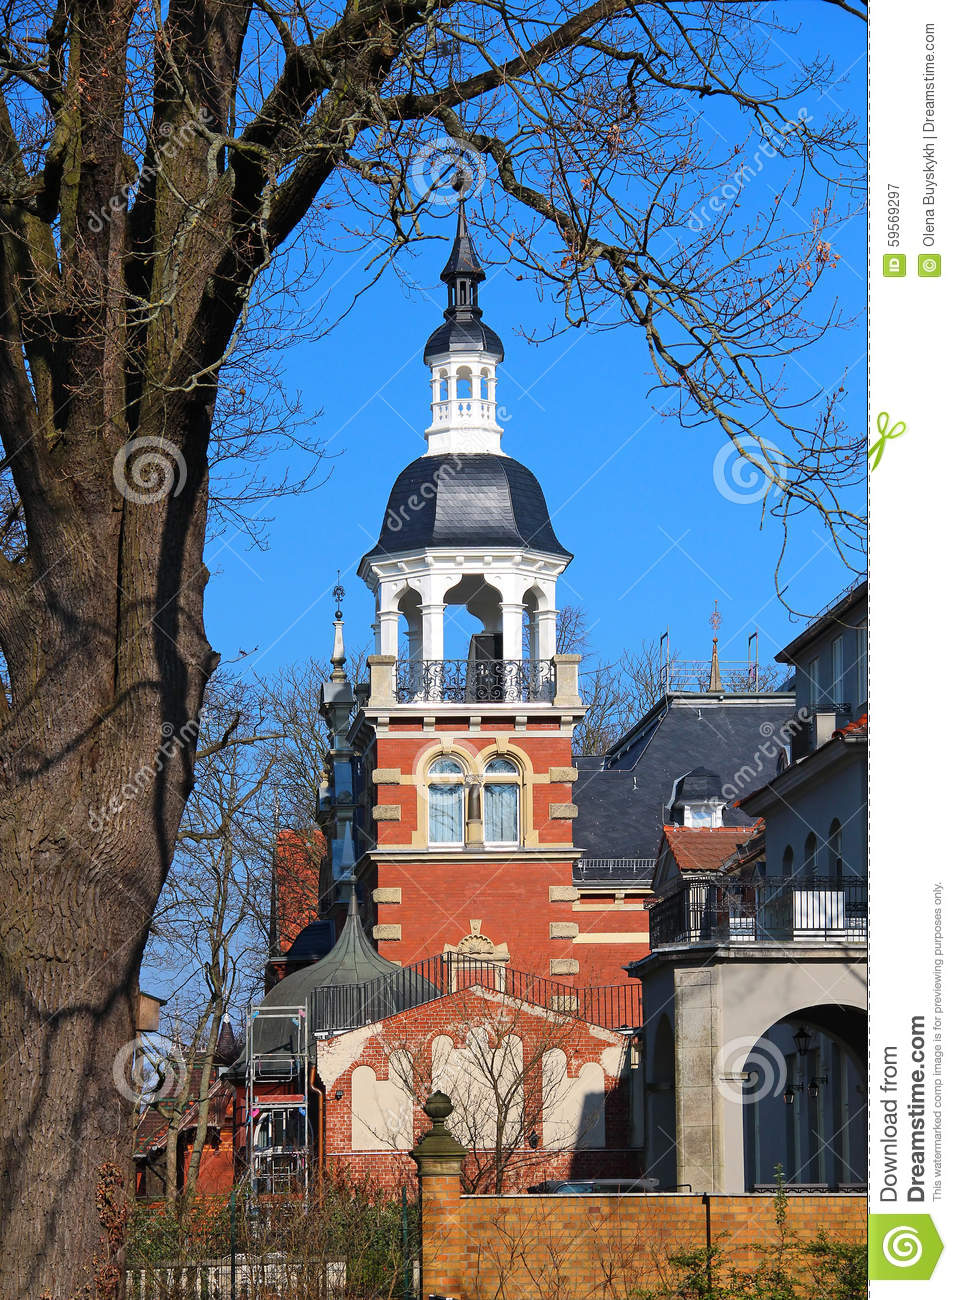 Old architecture at Wannsee in Berlin